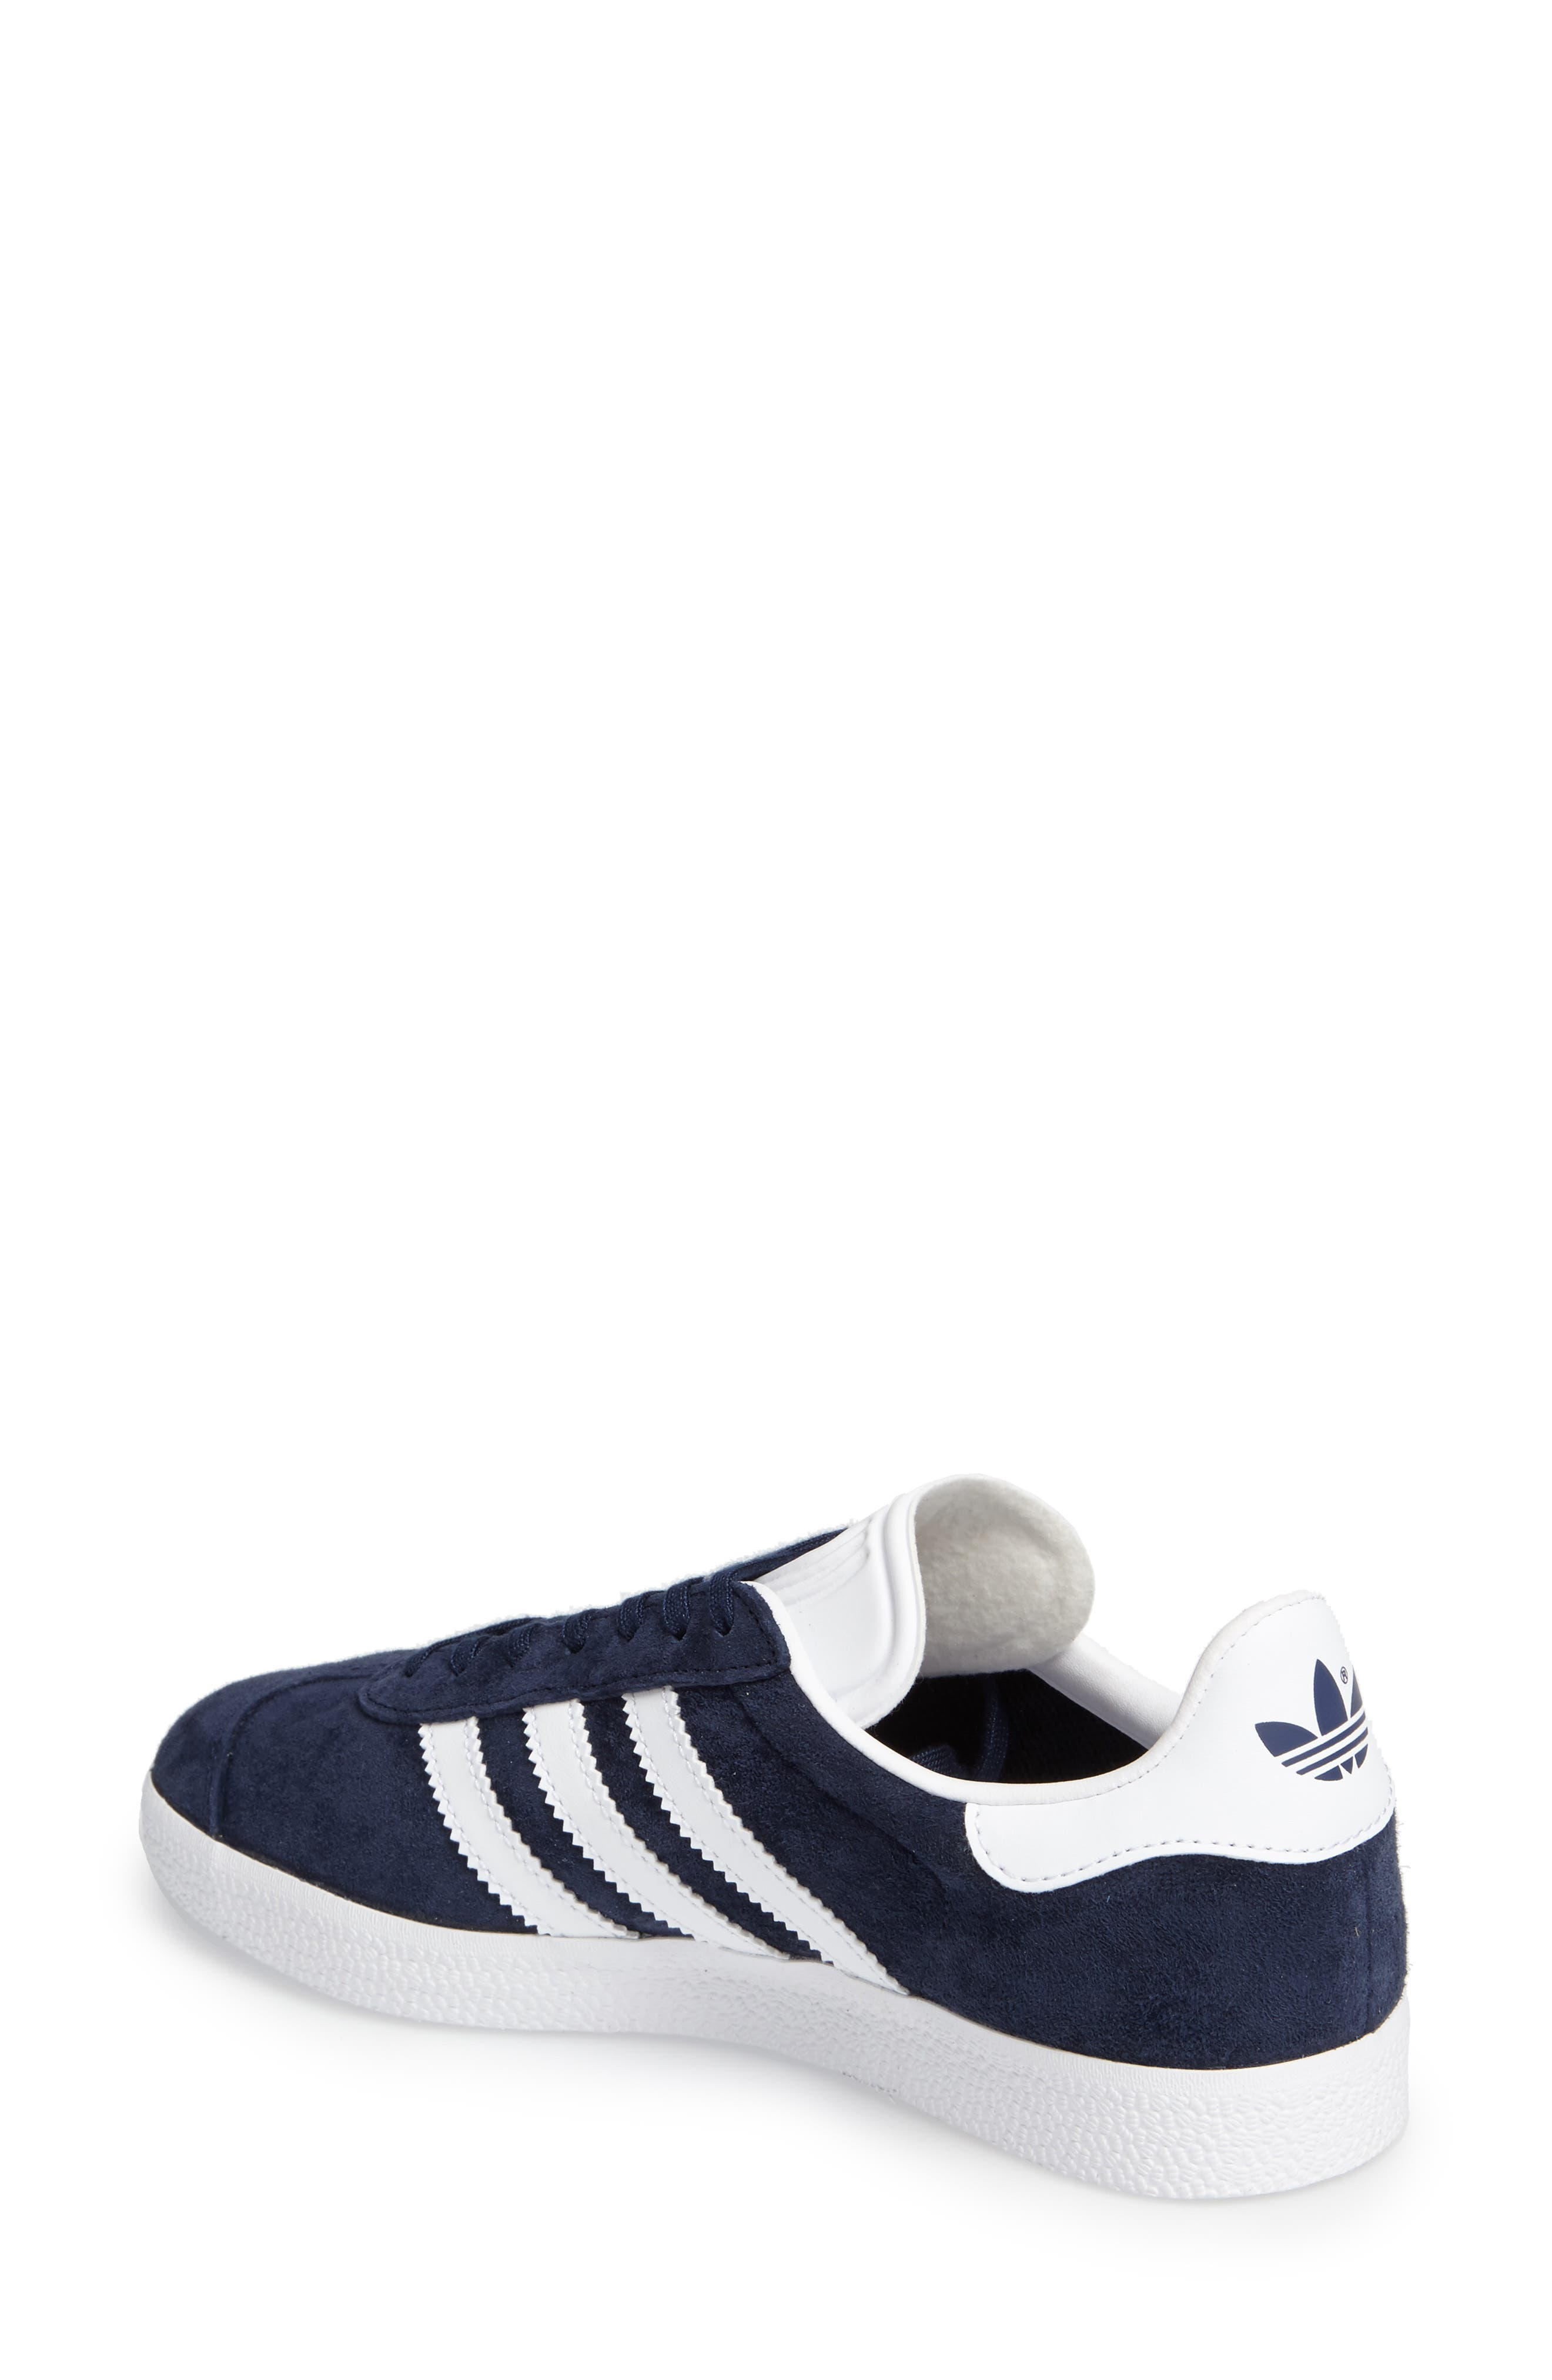 Gazelle Sneaker,                             Alternate thumbnail 2, color,                             Navy/ White/ Gold Metallic